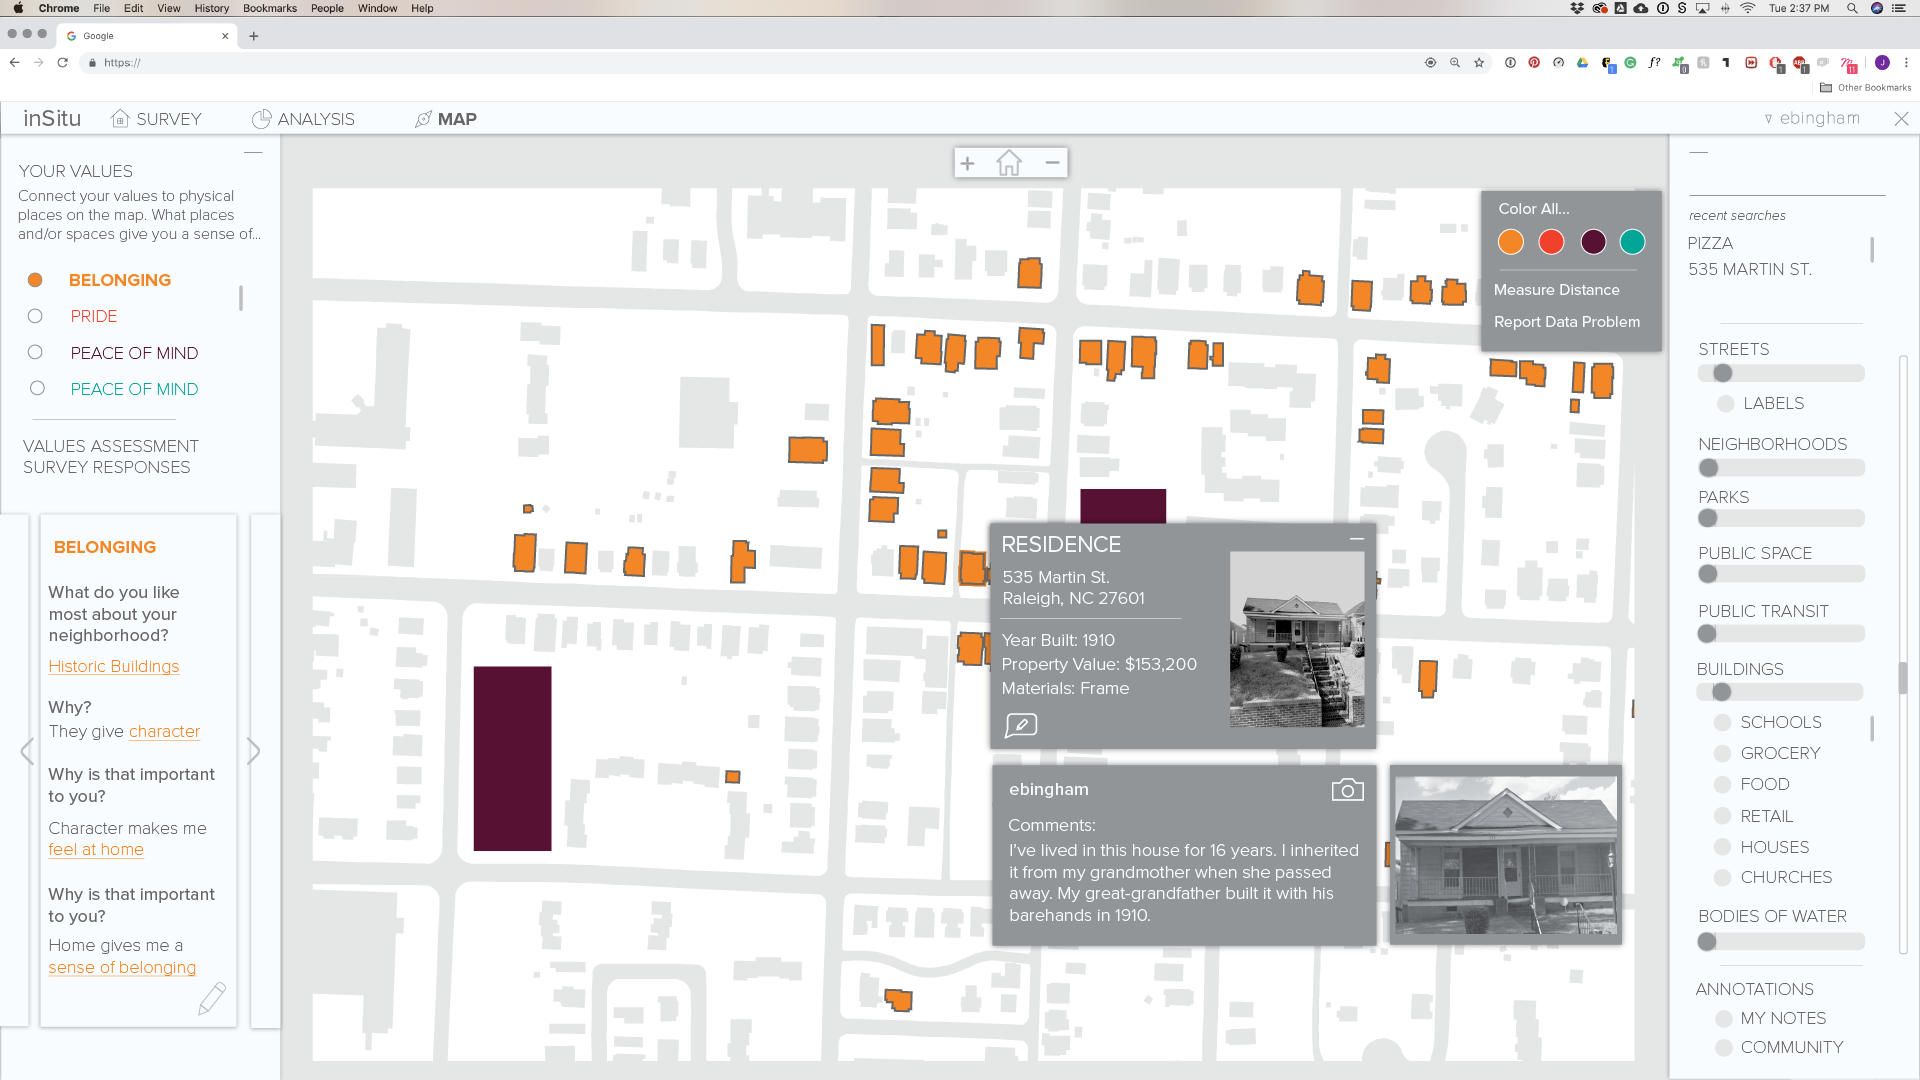 Based on their survey responses, stakeholders connect their personal values geospatially. Here they can add comments and pictures that are viewable by the entire community.